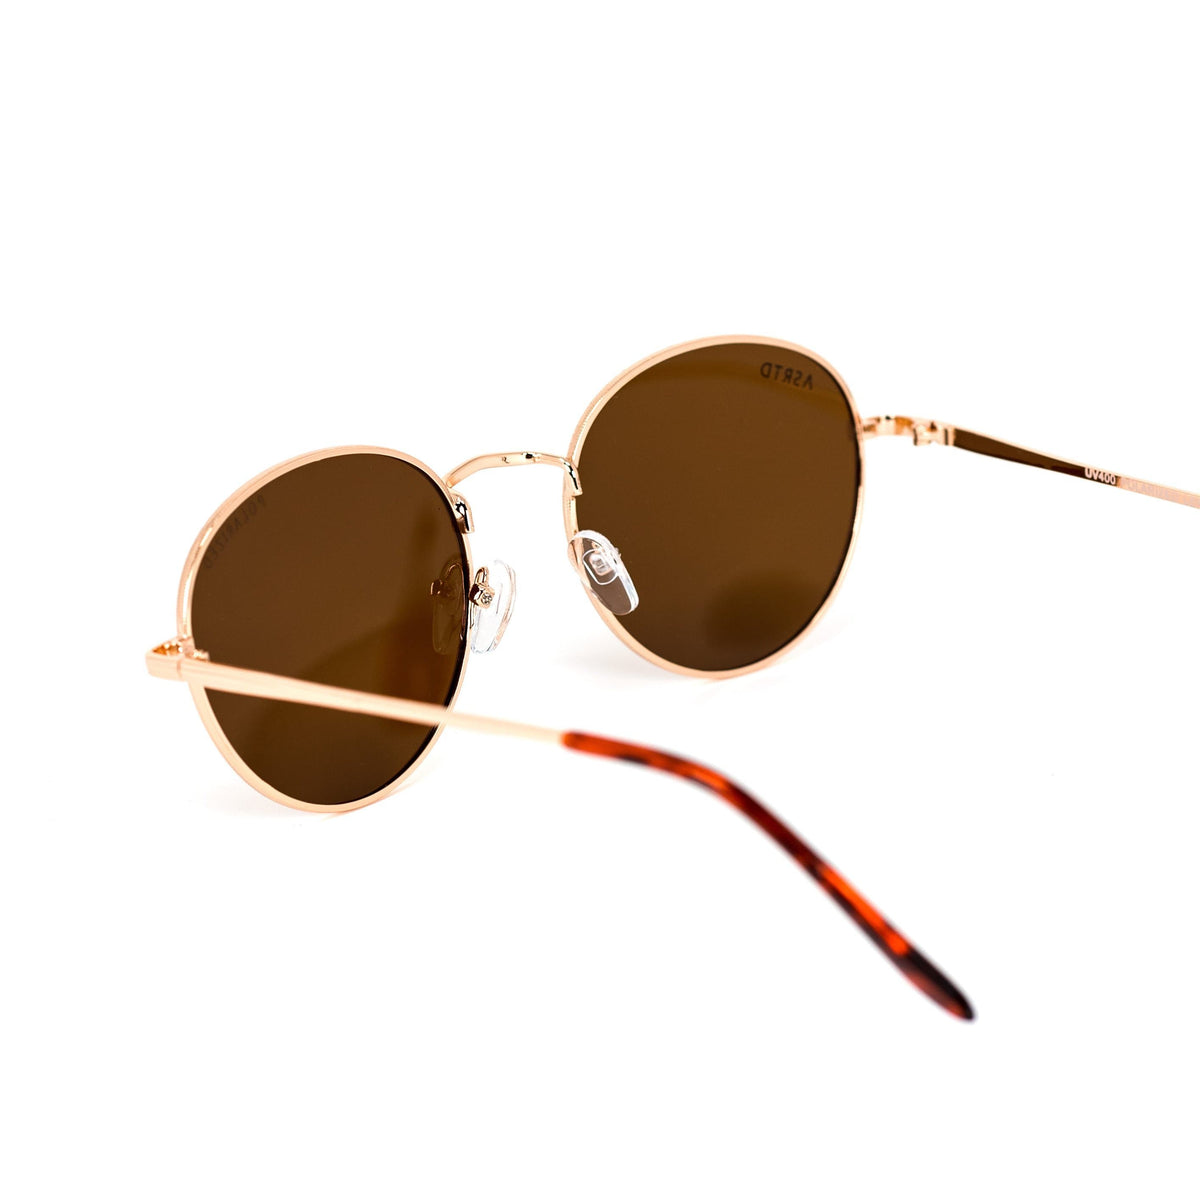 WEEKEND READY SUNNIES